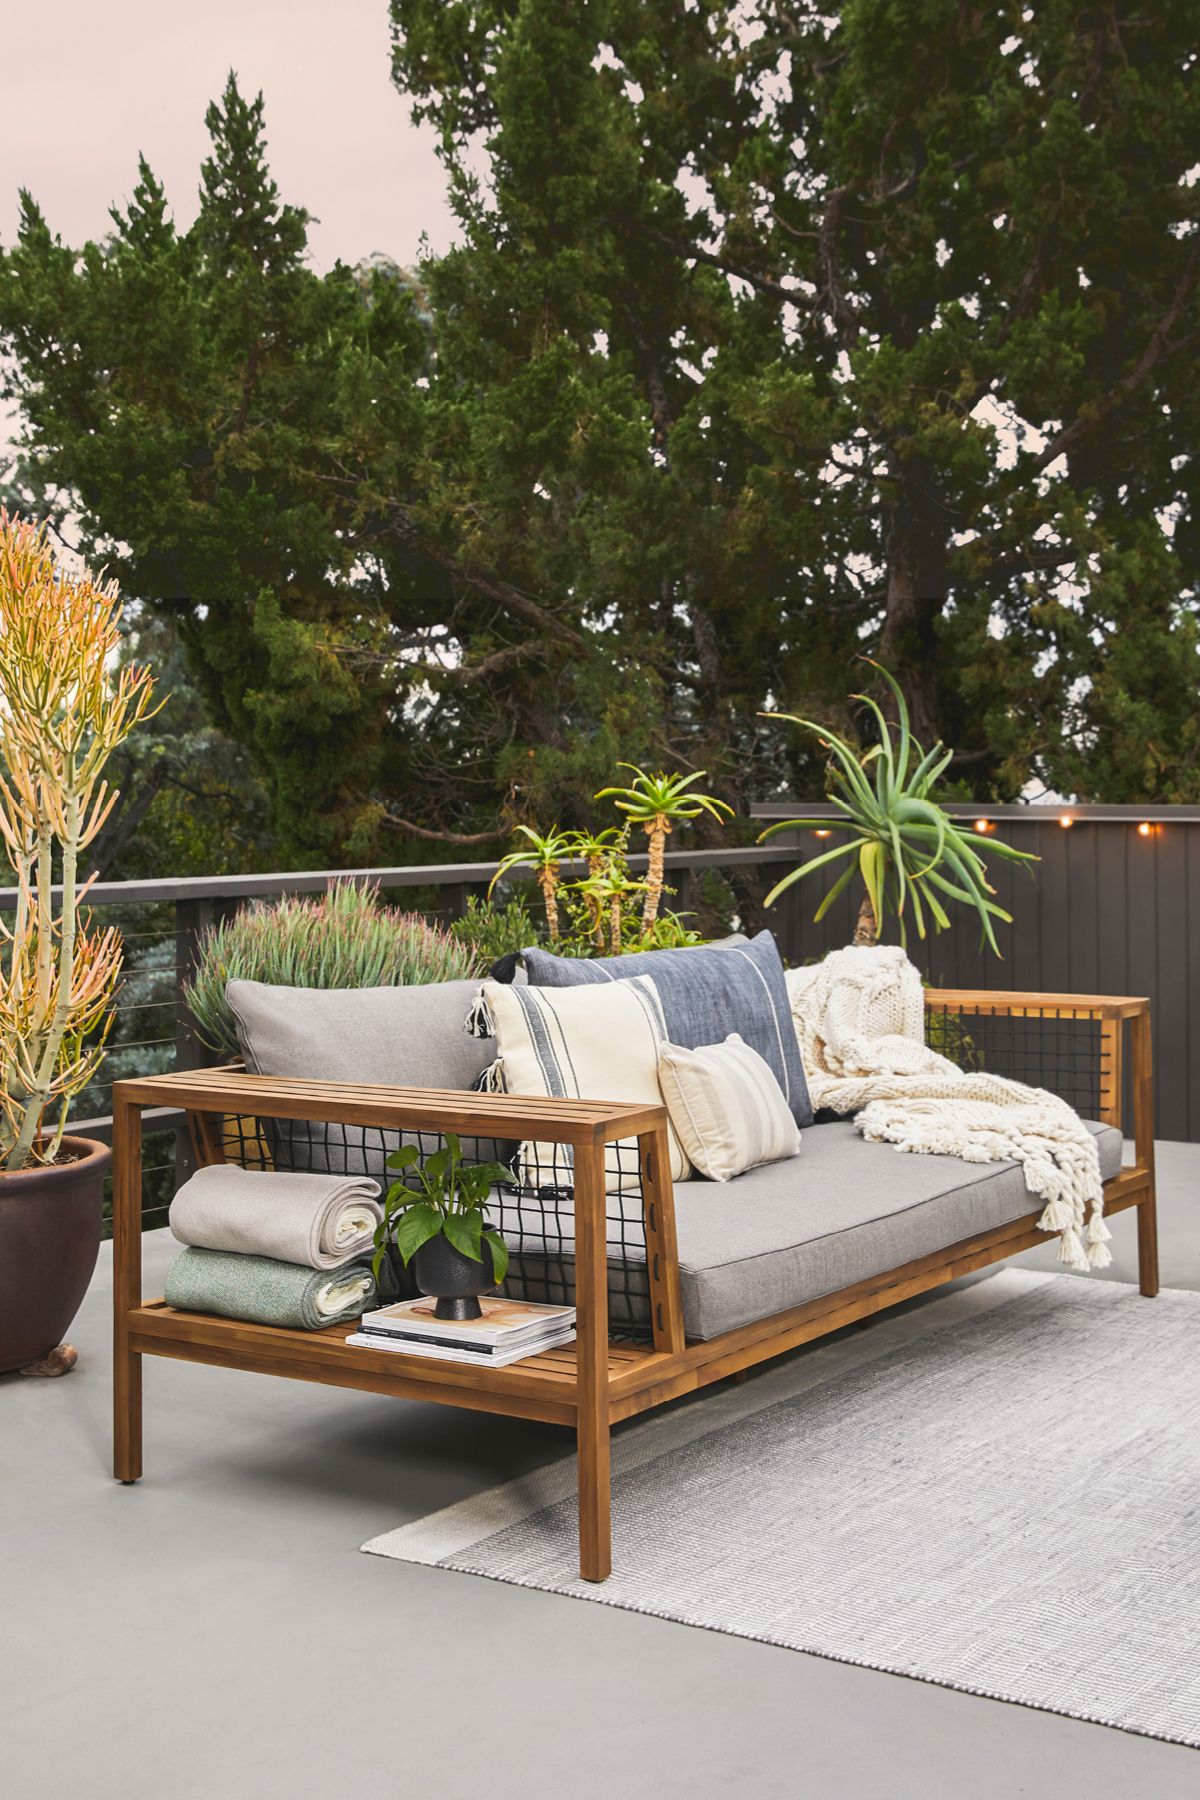 Callais Taupe Gray Sofa In 2020 Outdoor Dining Room Living Room